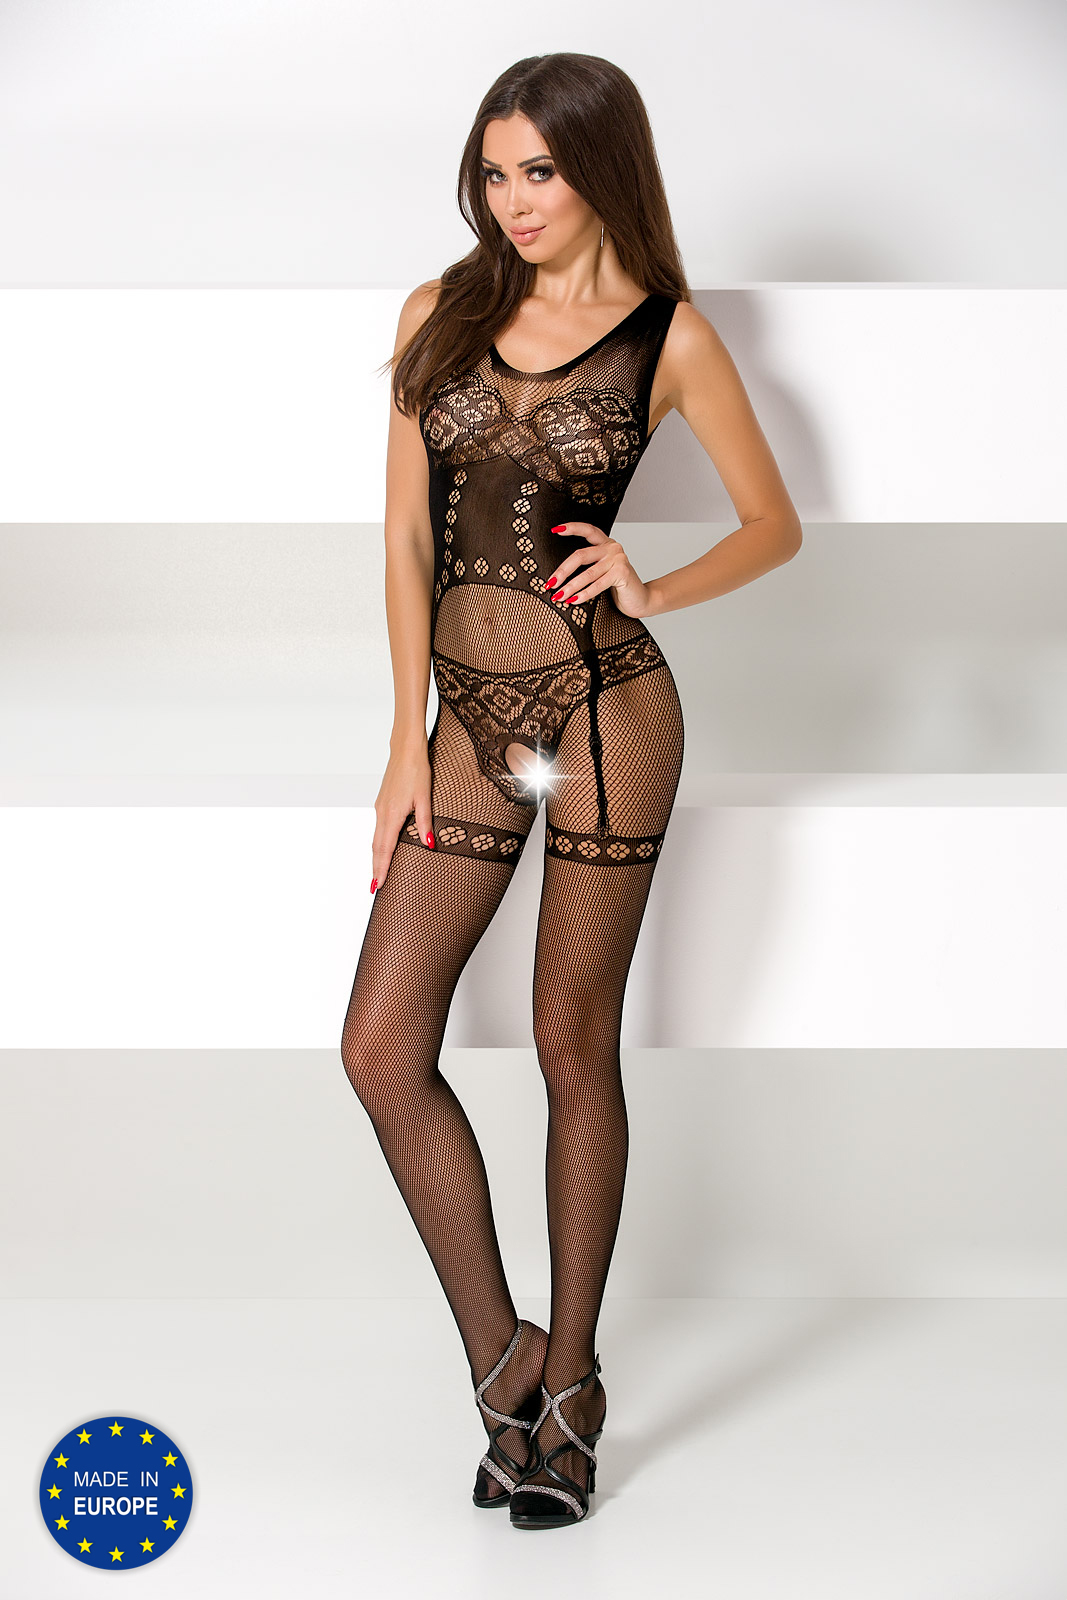 visnet bodystocking passion